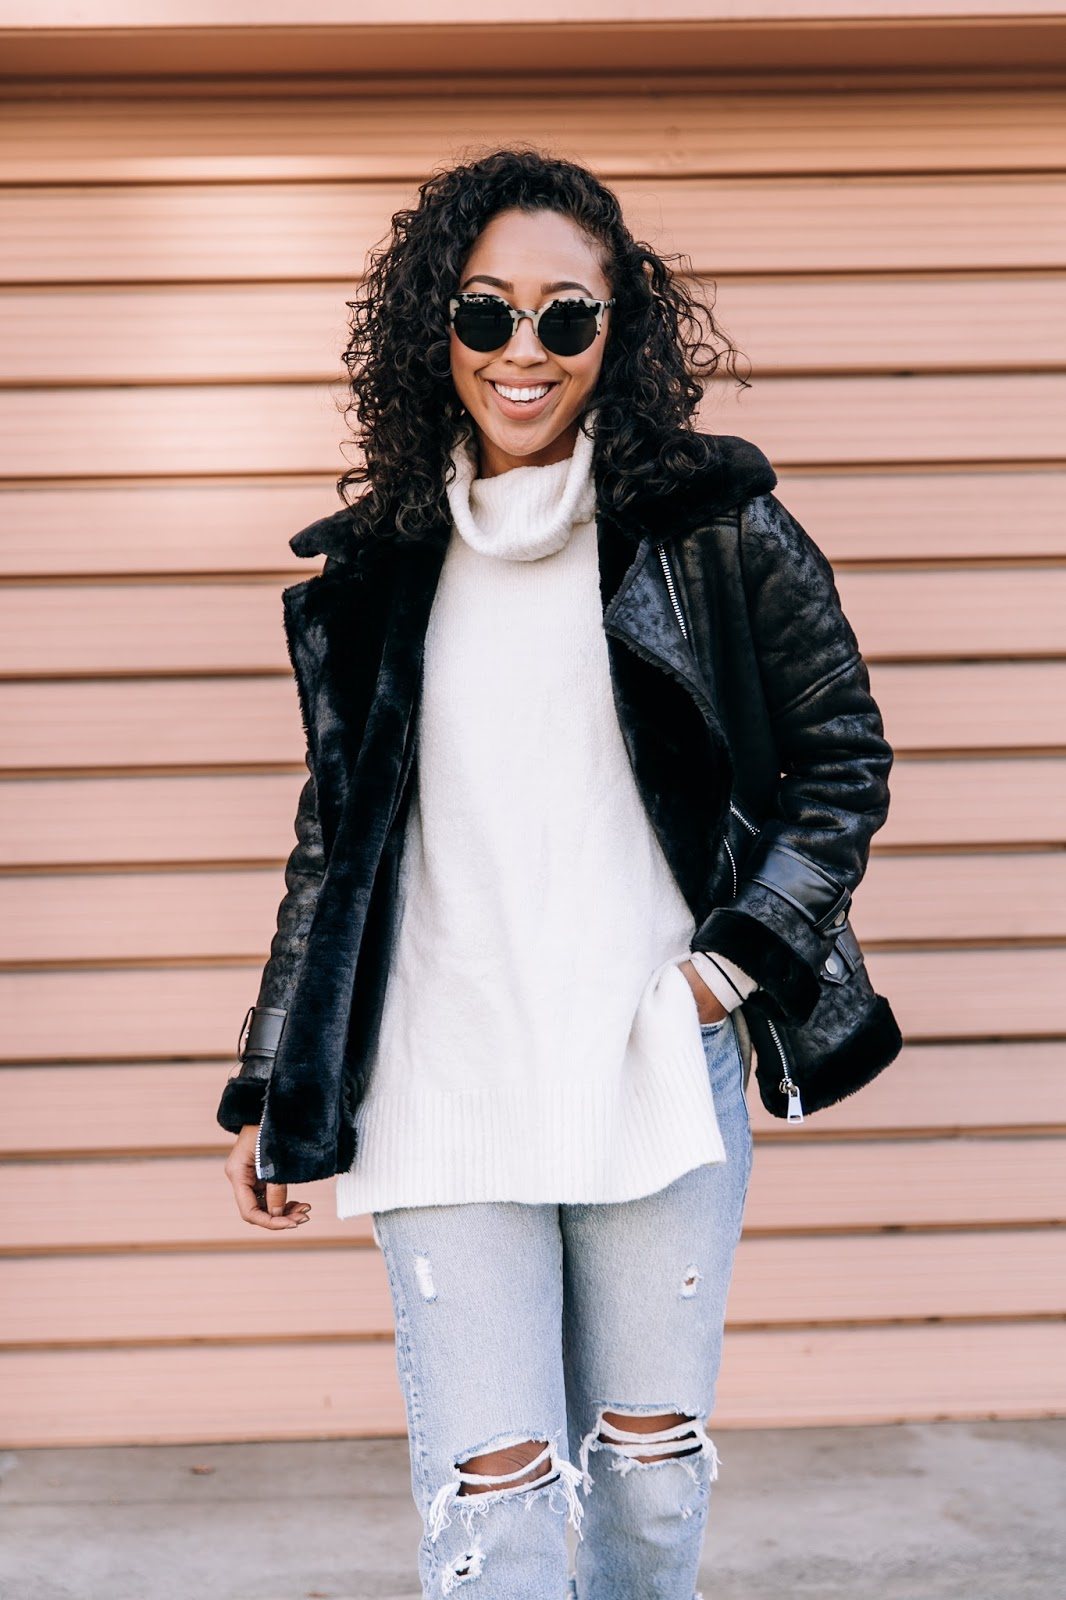 pancakestacker blog; #ootd; outfit; boohoo faux shearling aviator jacket; retro super future sunglasses; Levi's wedgie distressed denim; everlane day heel